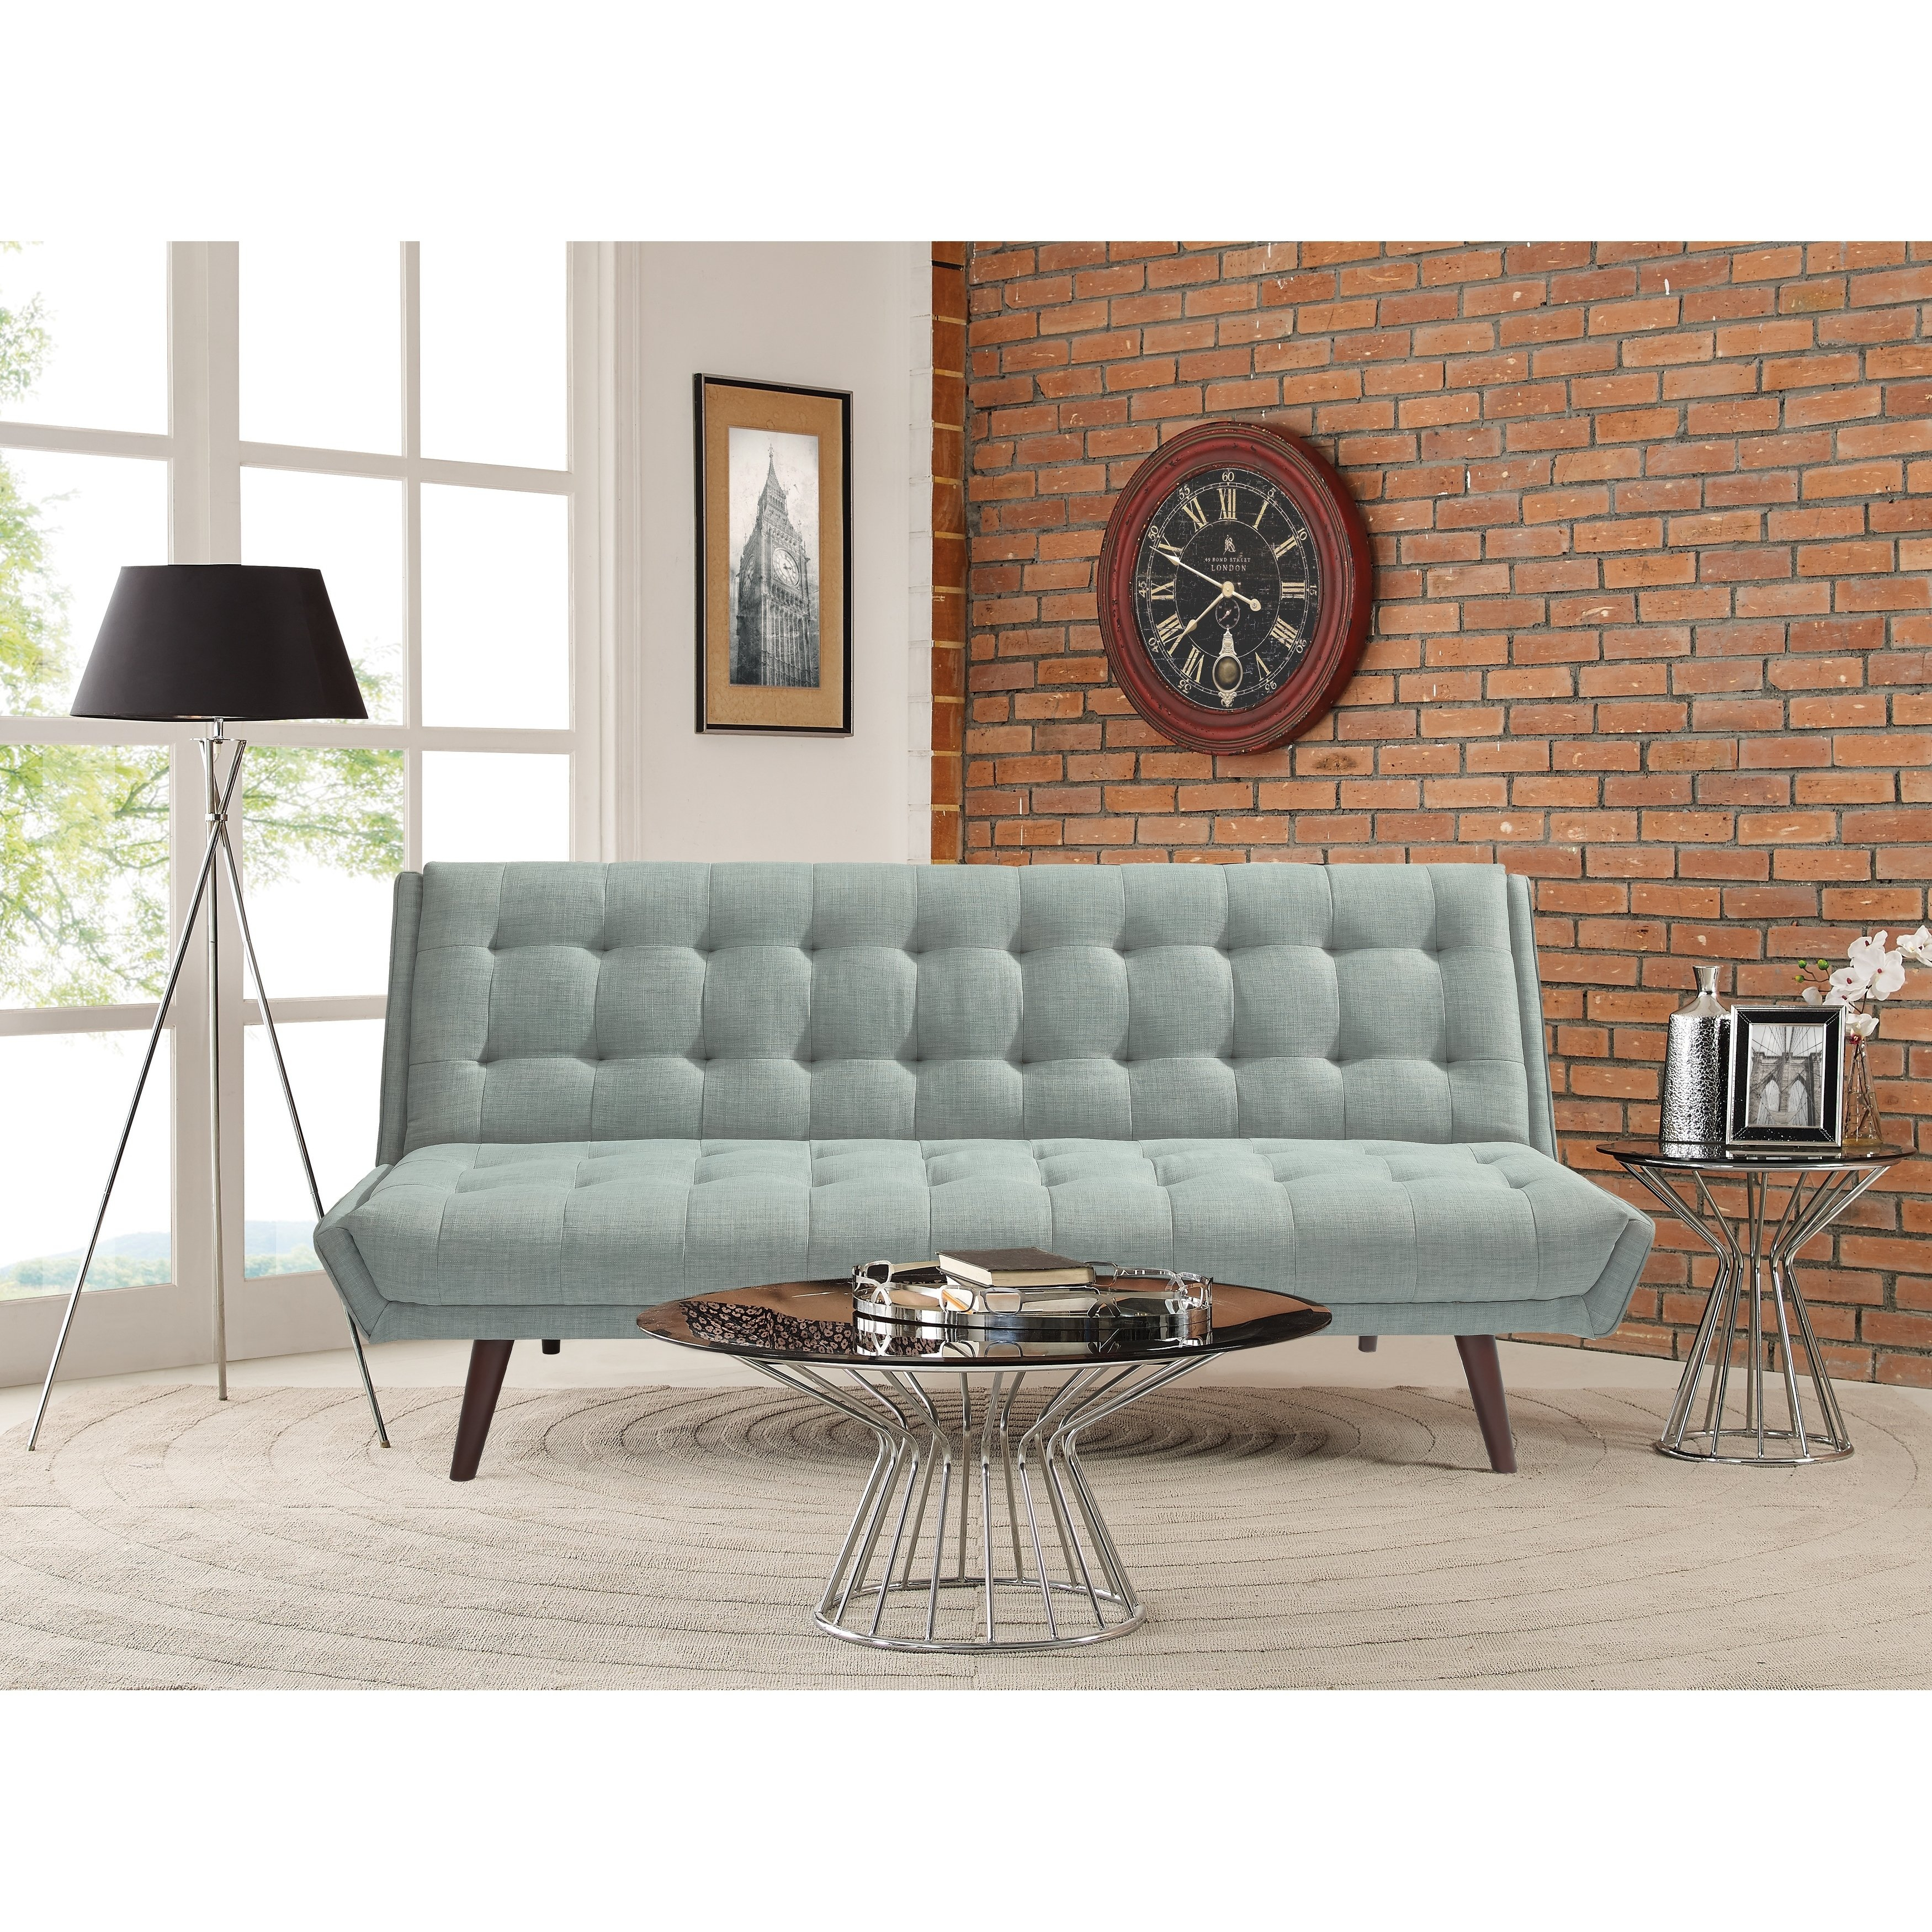 Shop Relax A Lounger Landry Convertible Sofa – Free Shipping Today Regarding Landry Sofa Chairs (View 16 of 25)